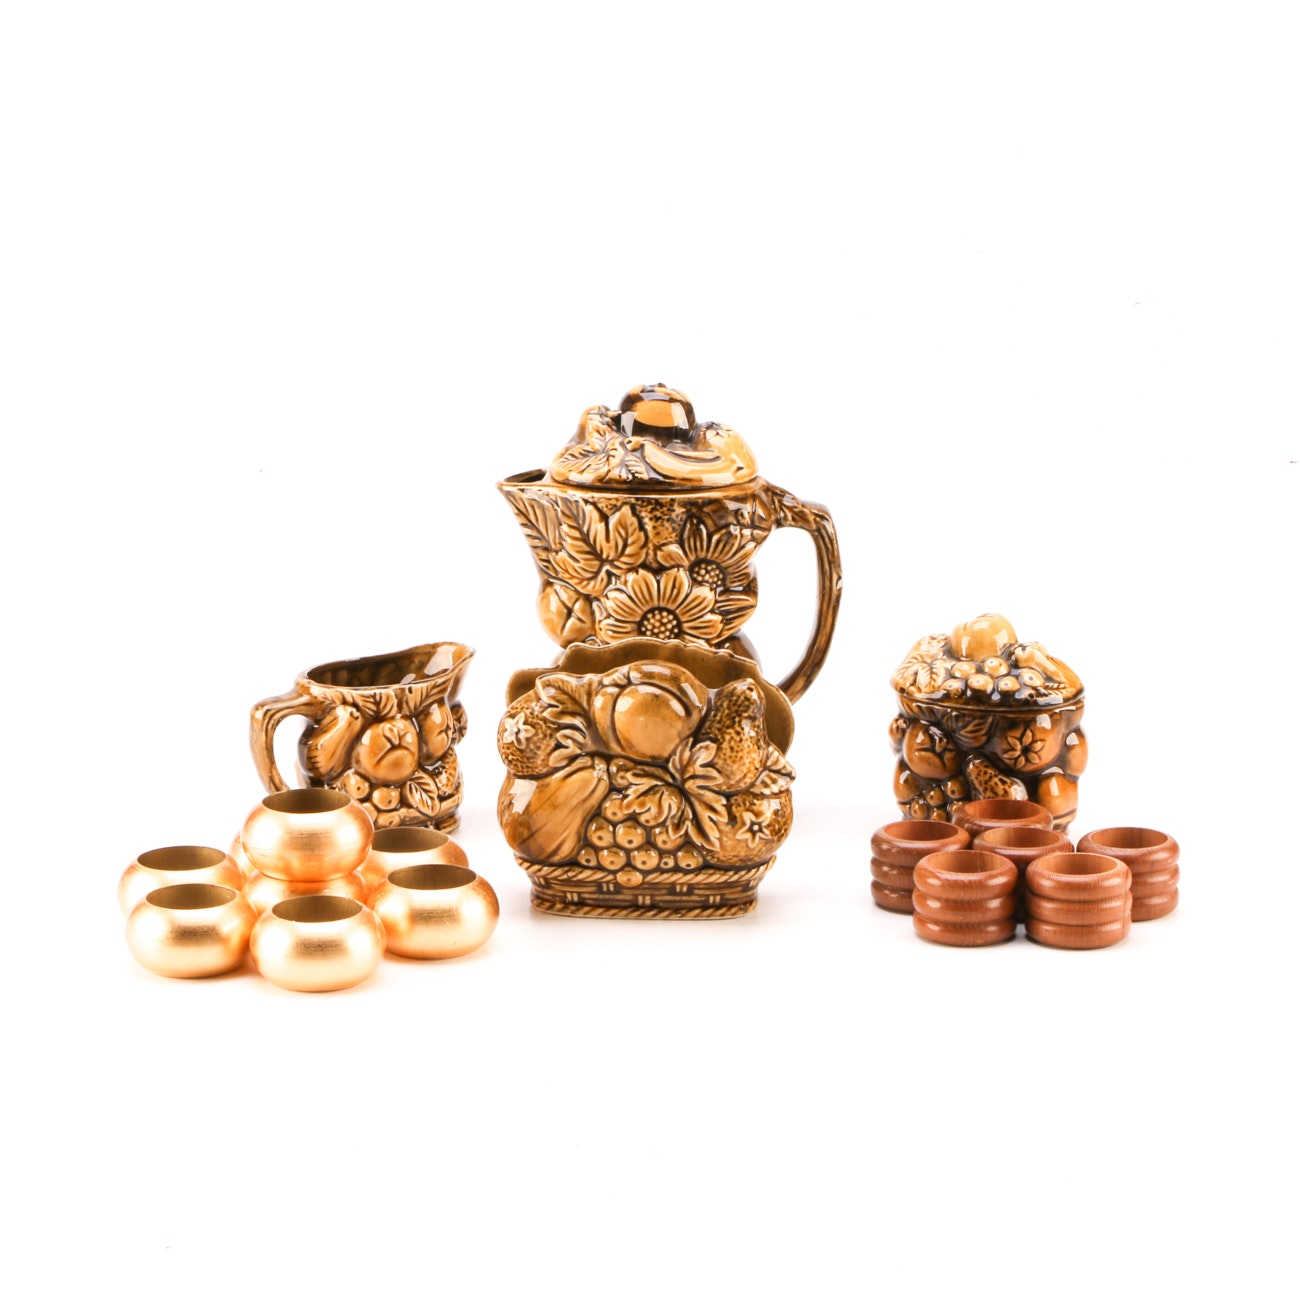 Decorative Tableware and Napkin Rings